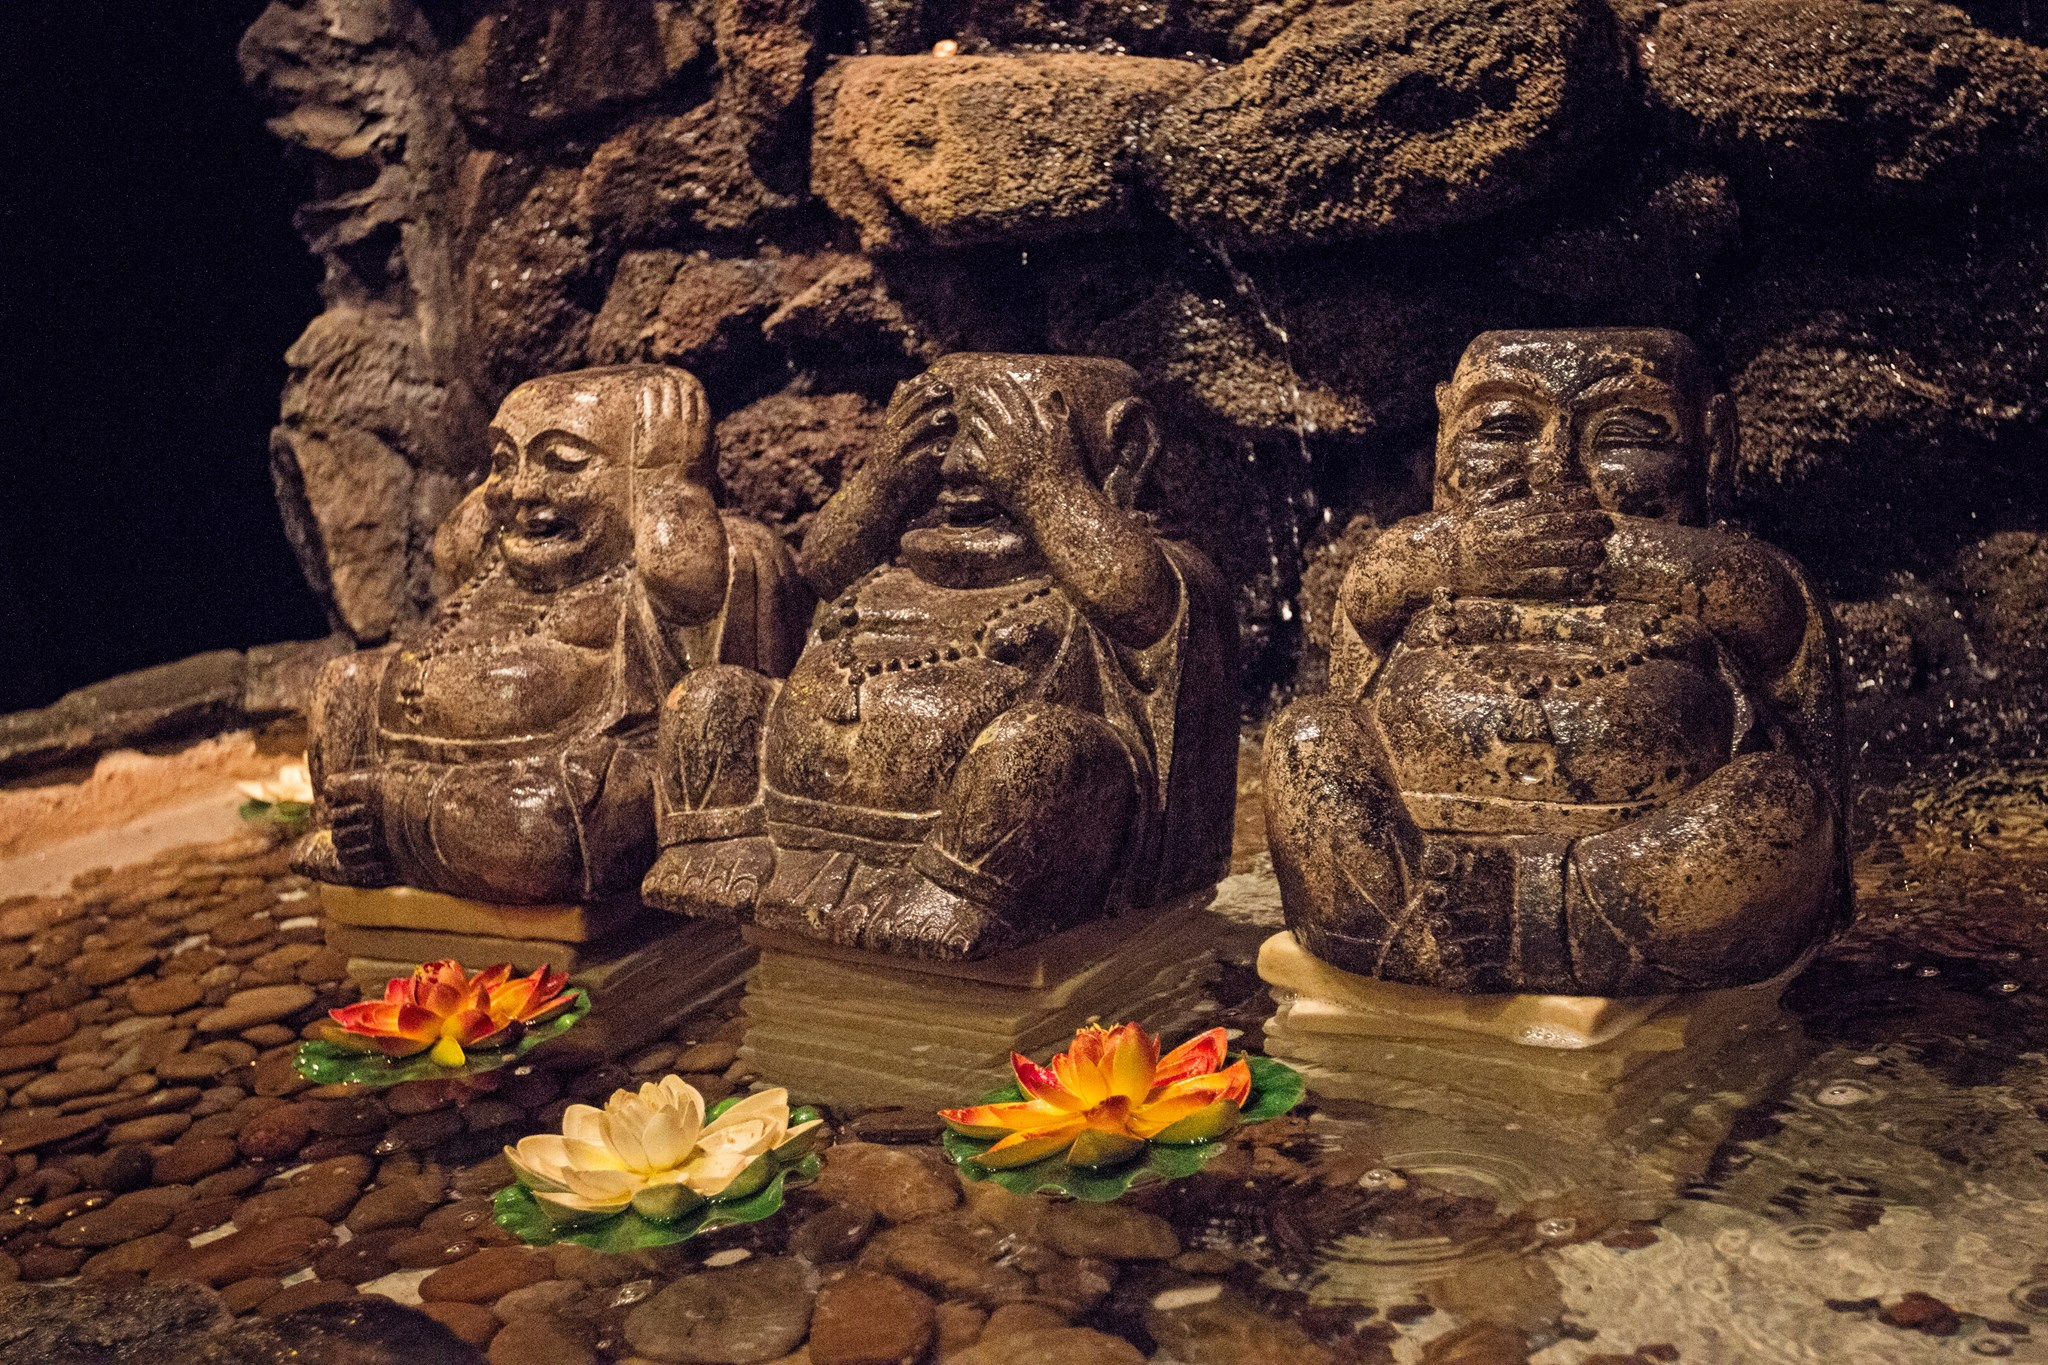 Budha Statues: see no evil, hear no evil, speak no evil.